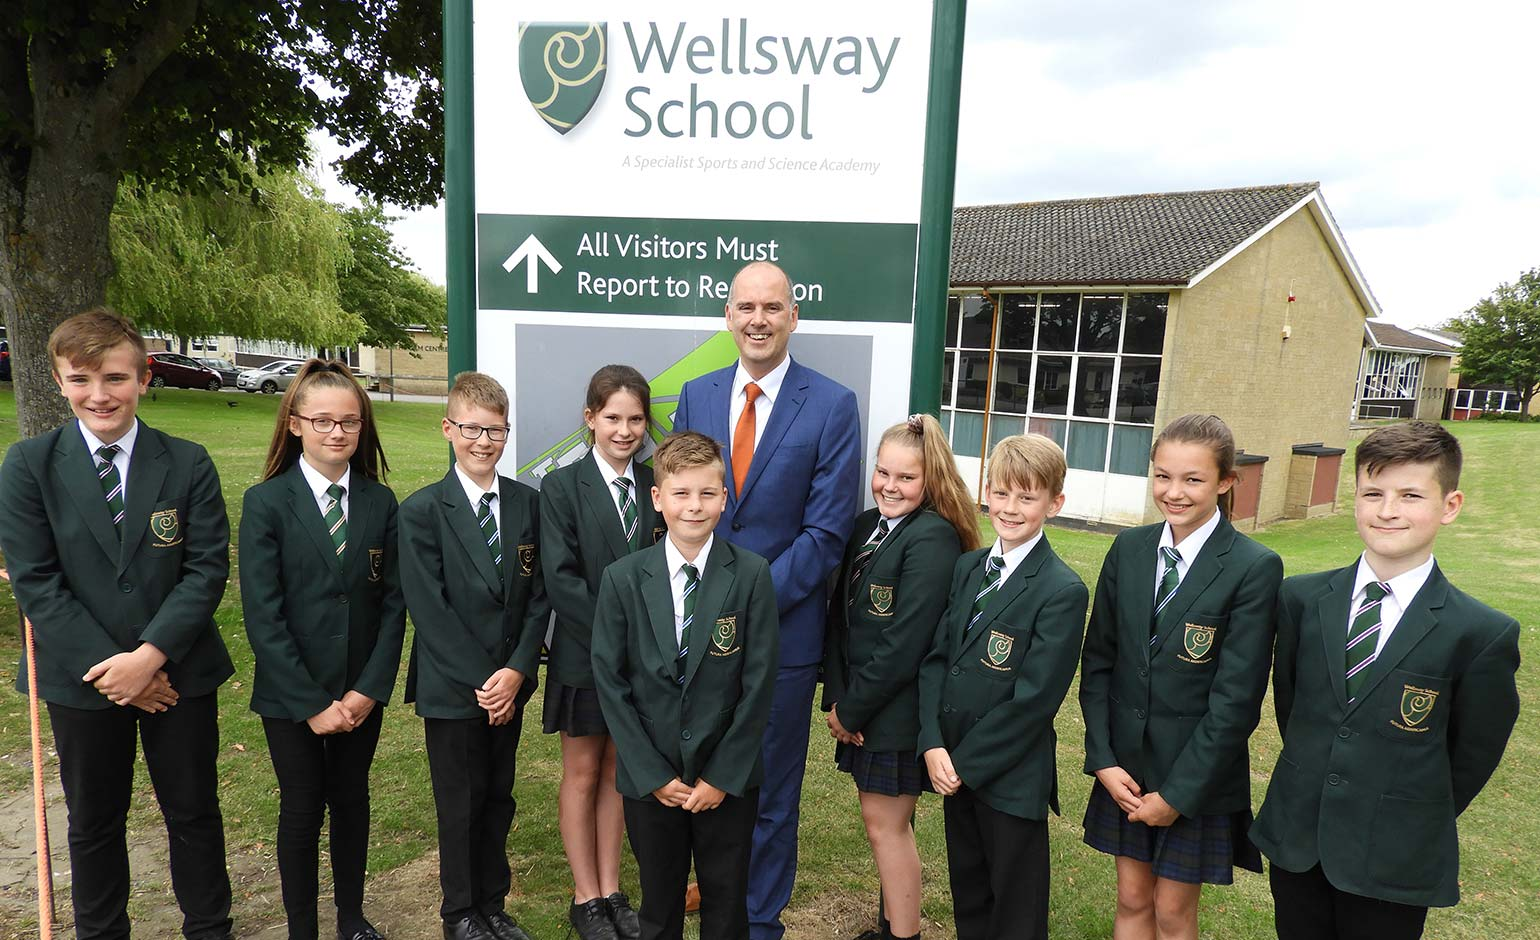 Wellsway School welcomes latest rating from Ofsted following inspection